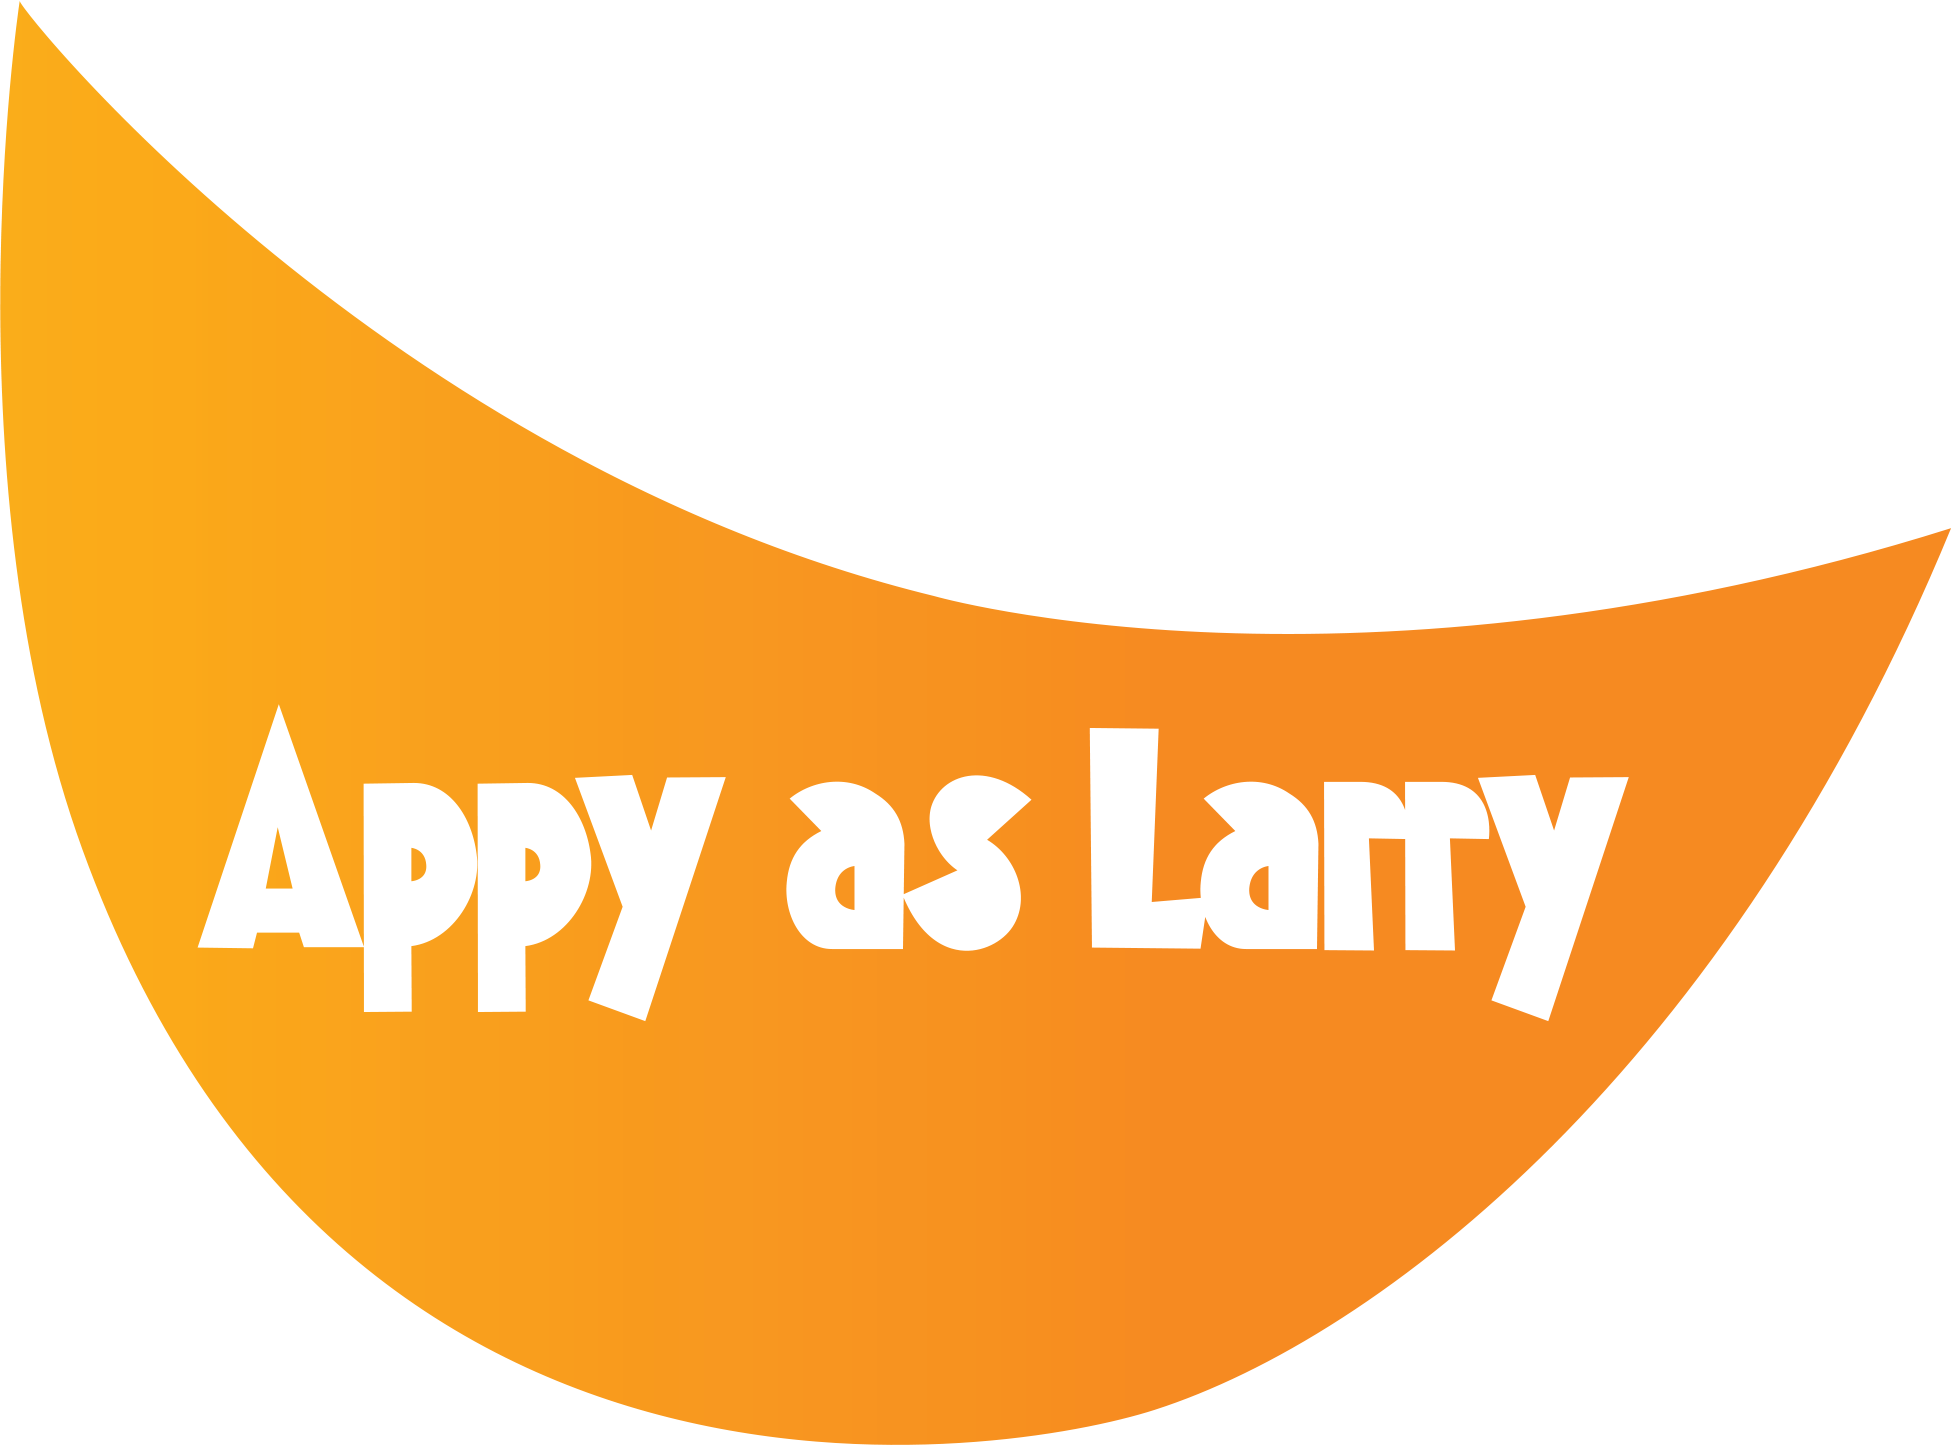 Larry drawing word. Appy as healthcare at